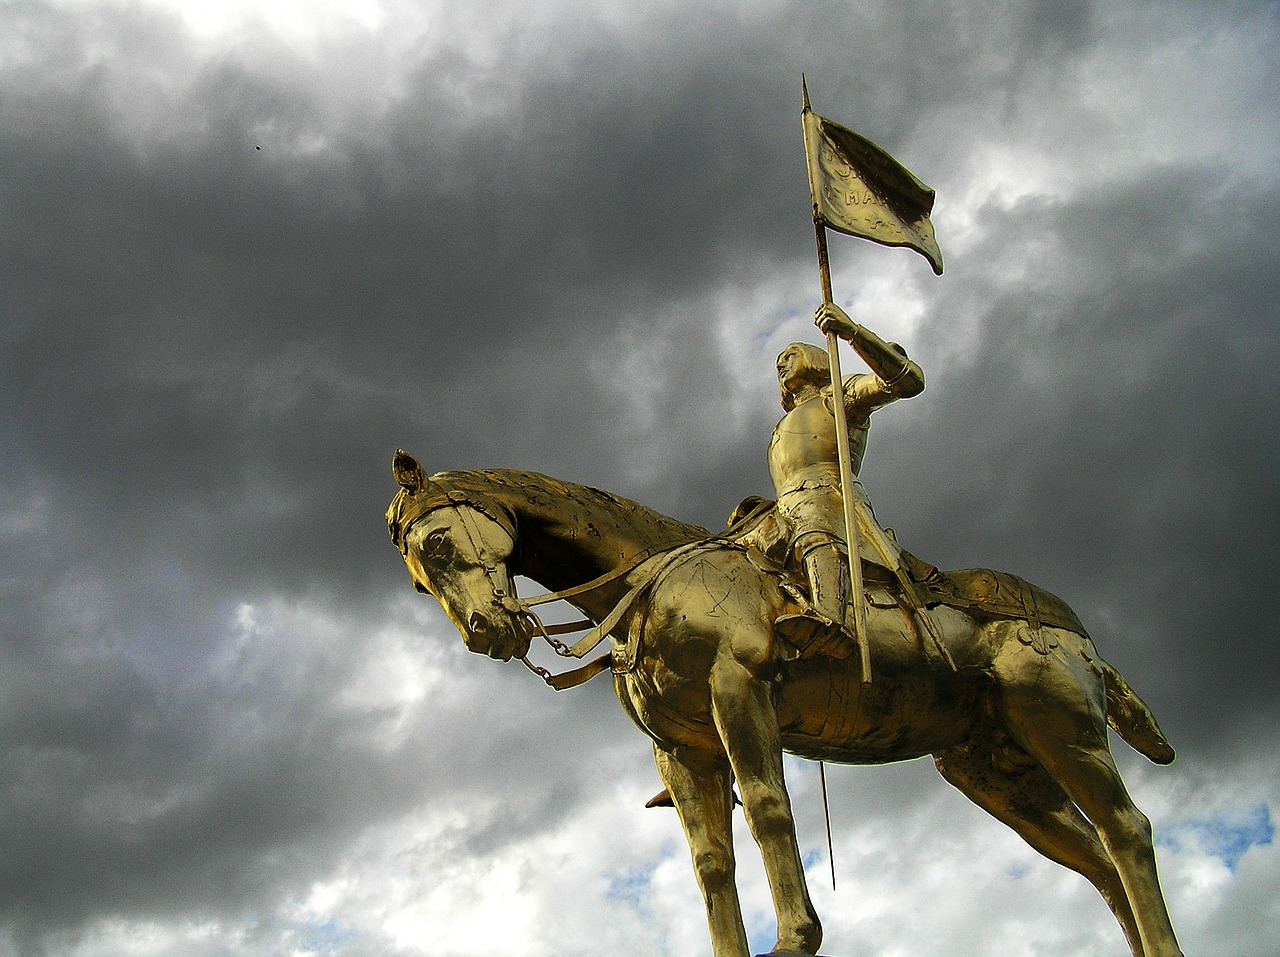 Statue of a knight riding a horse; the knight is holding a flag